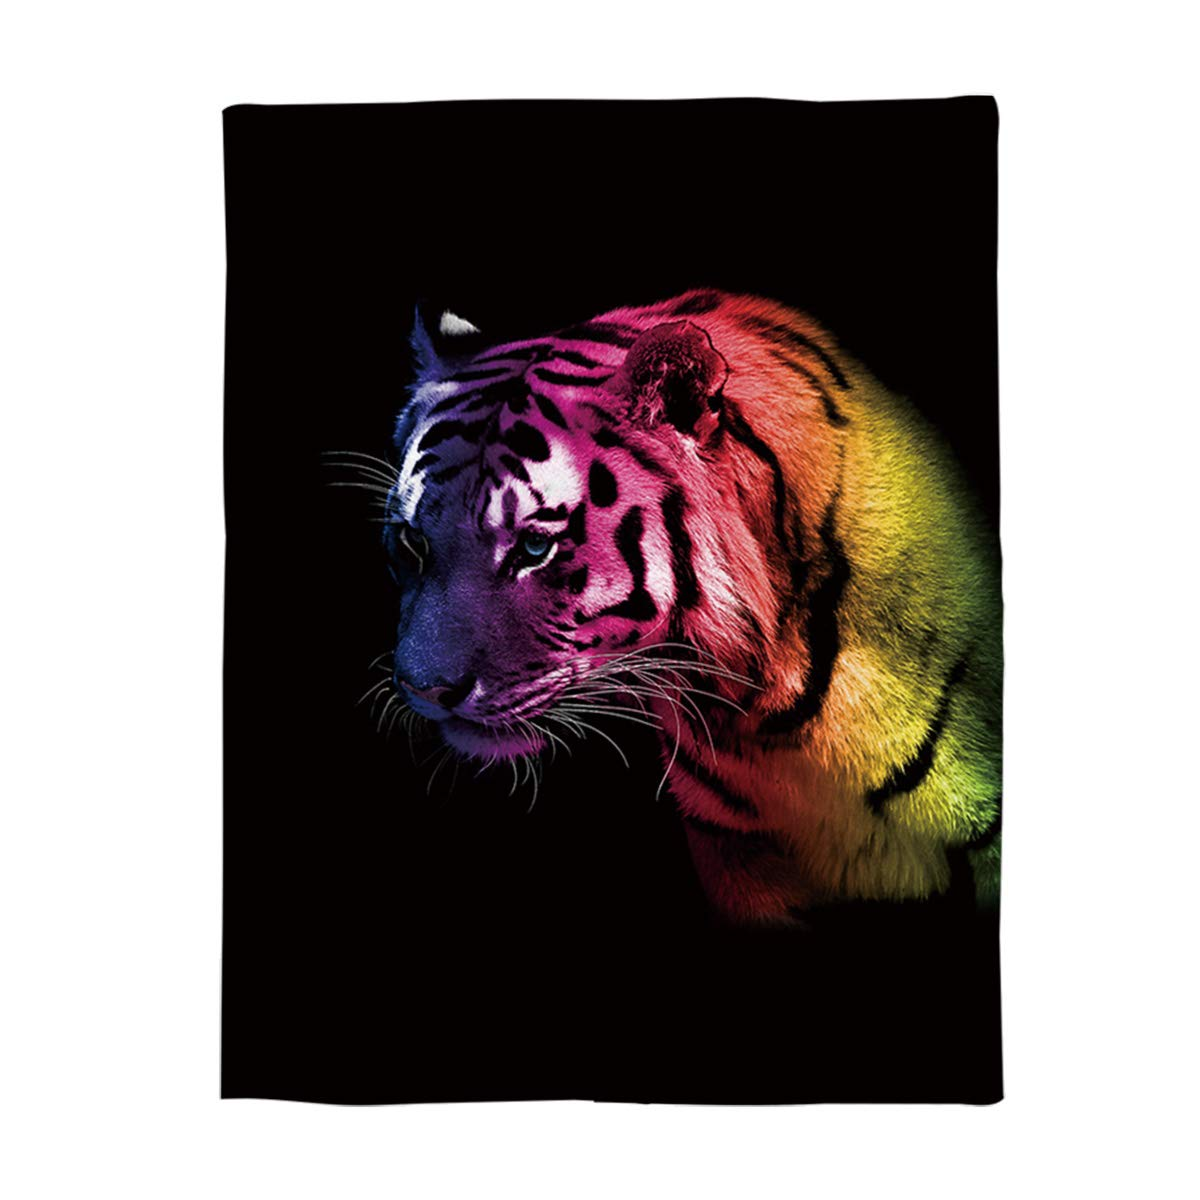 Tiger 2626lyag5103 49x59inch=125x150cm YEHO Art Gallery Flannel Fleece Bed Blanket Soft ThrowBlankets for Adult Kids Girls Boys,Cute Christmas Santa Claus Pattern,Lightweight Blankets for Bedroom Living Room Sofa Couch,49x59inch